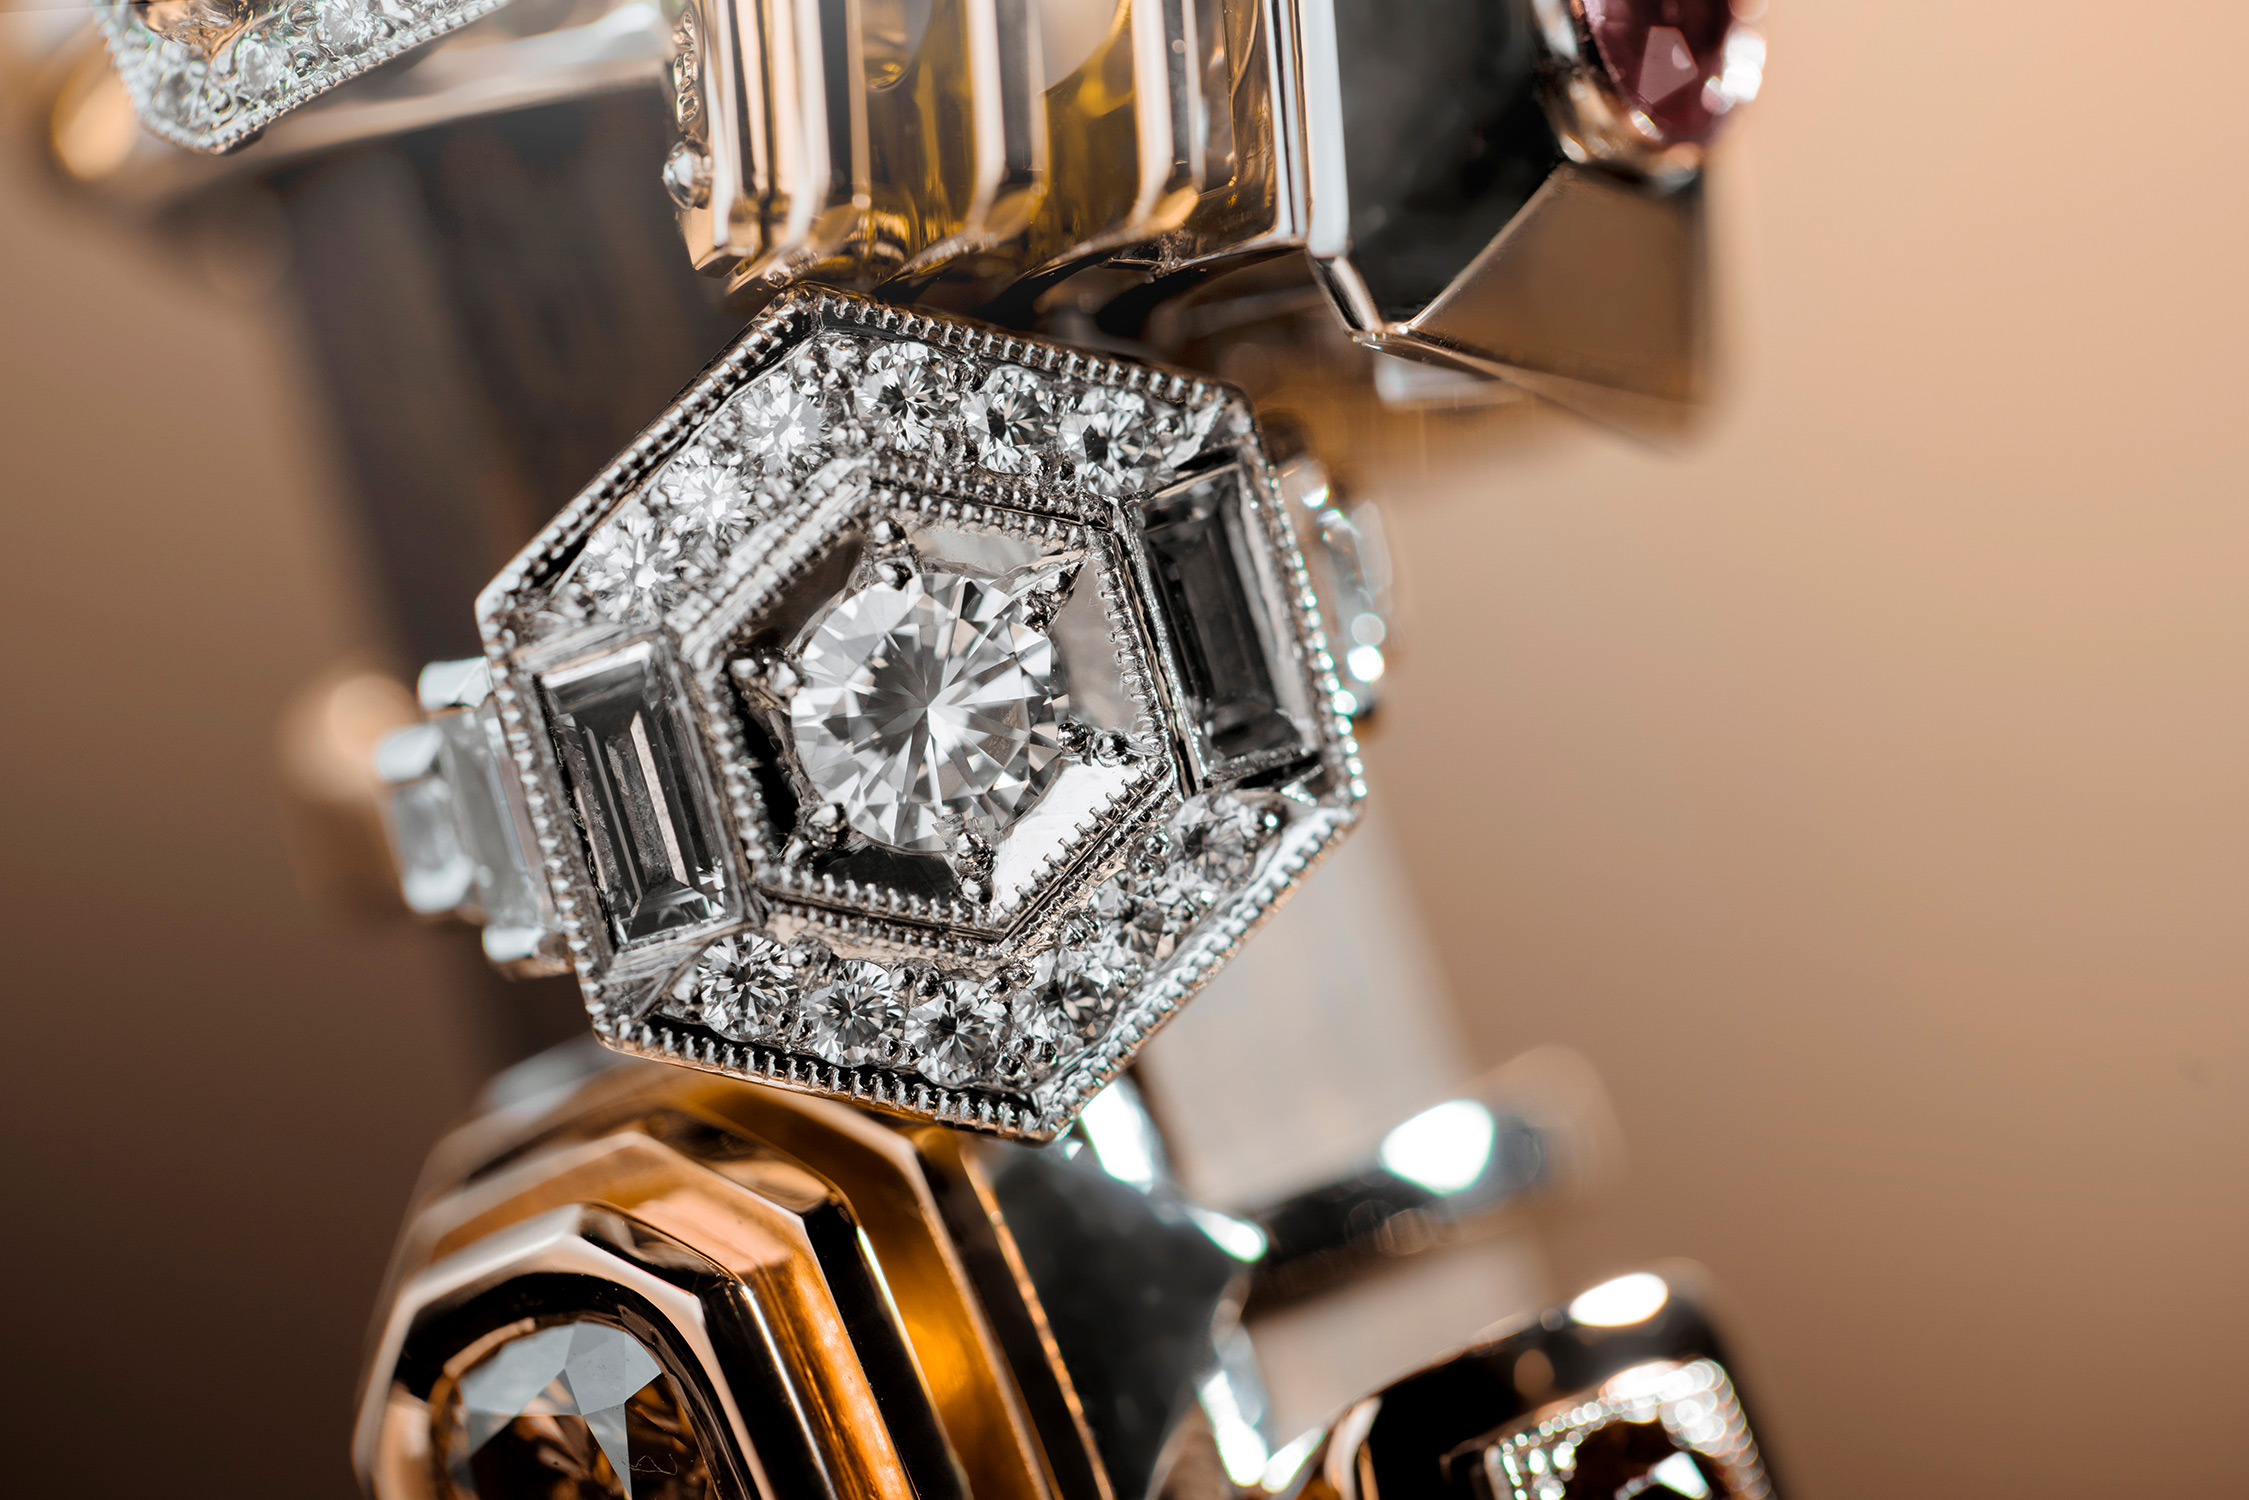 rose-and-crown-melbounre-gold-silver-rings-deco-luxury-australian_02.jpg